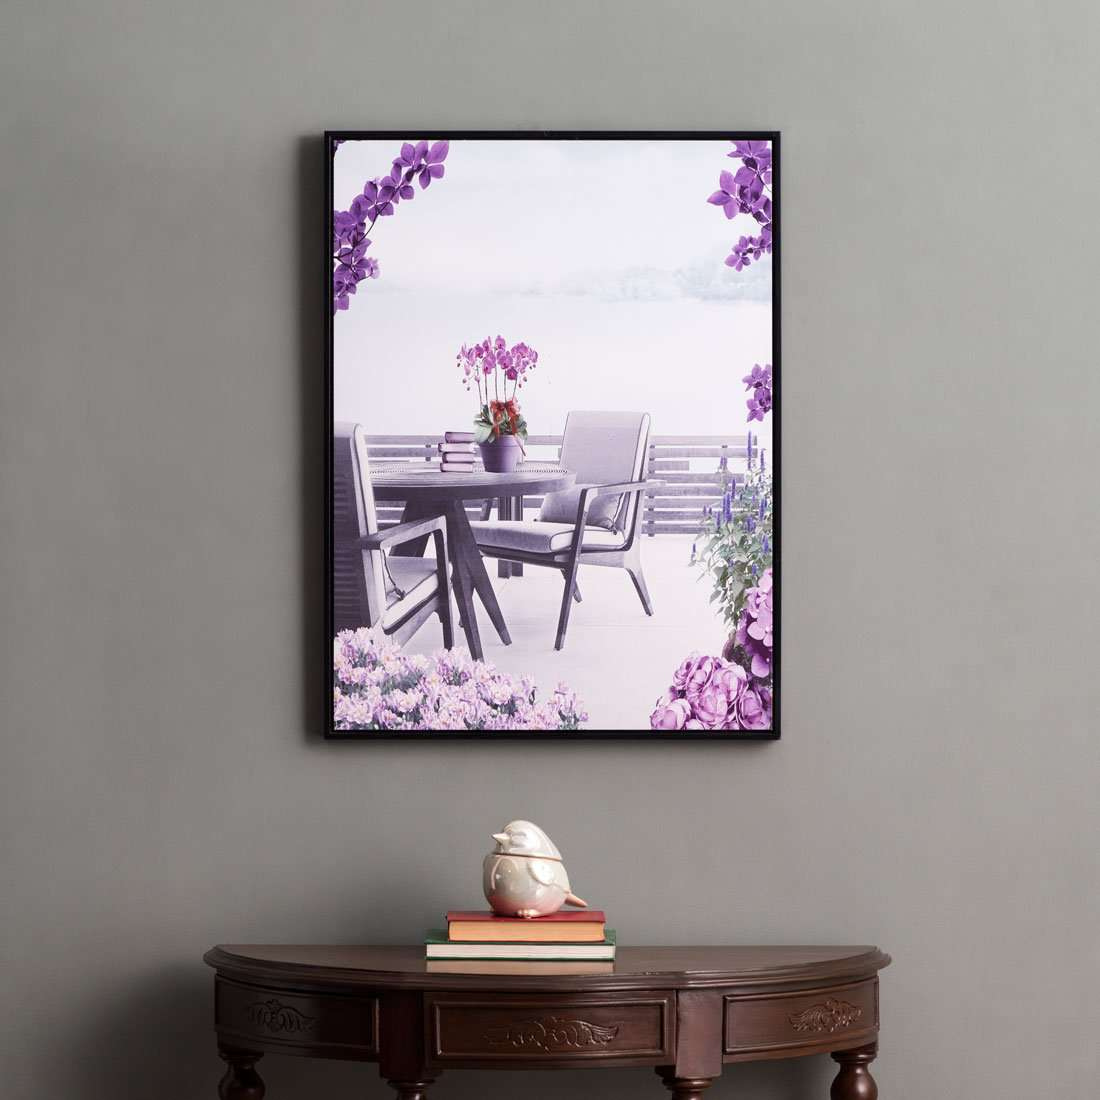 Tea in Sicily - Framed Prints on Canvas